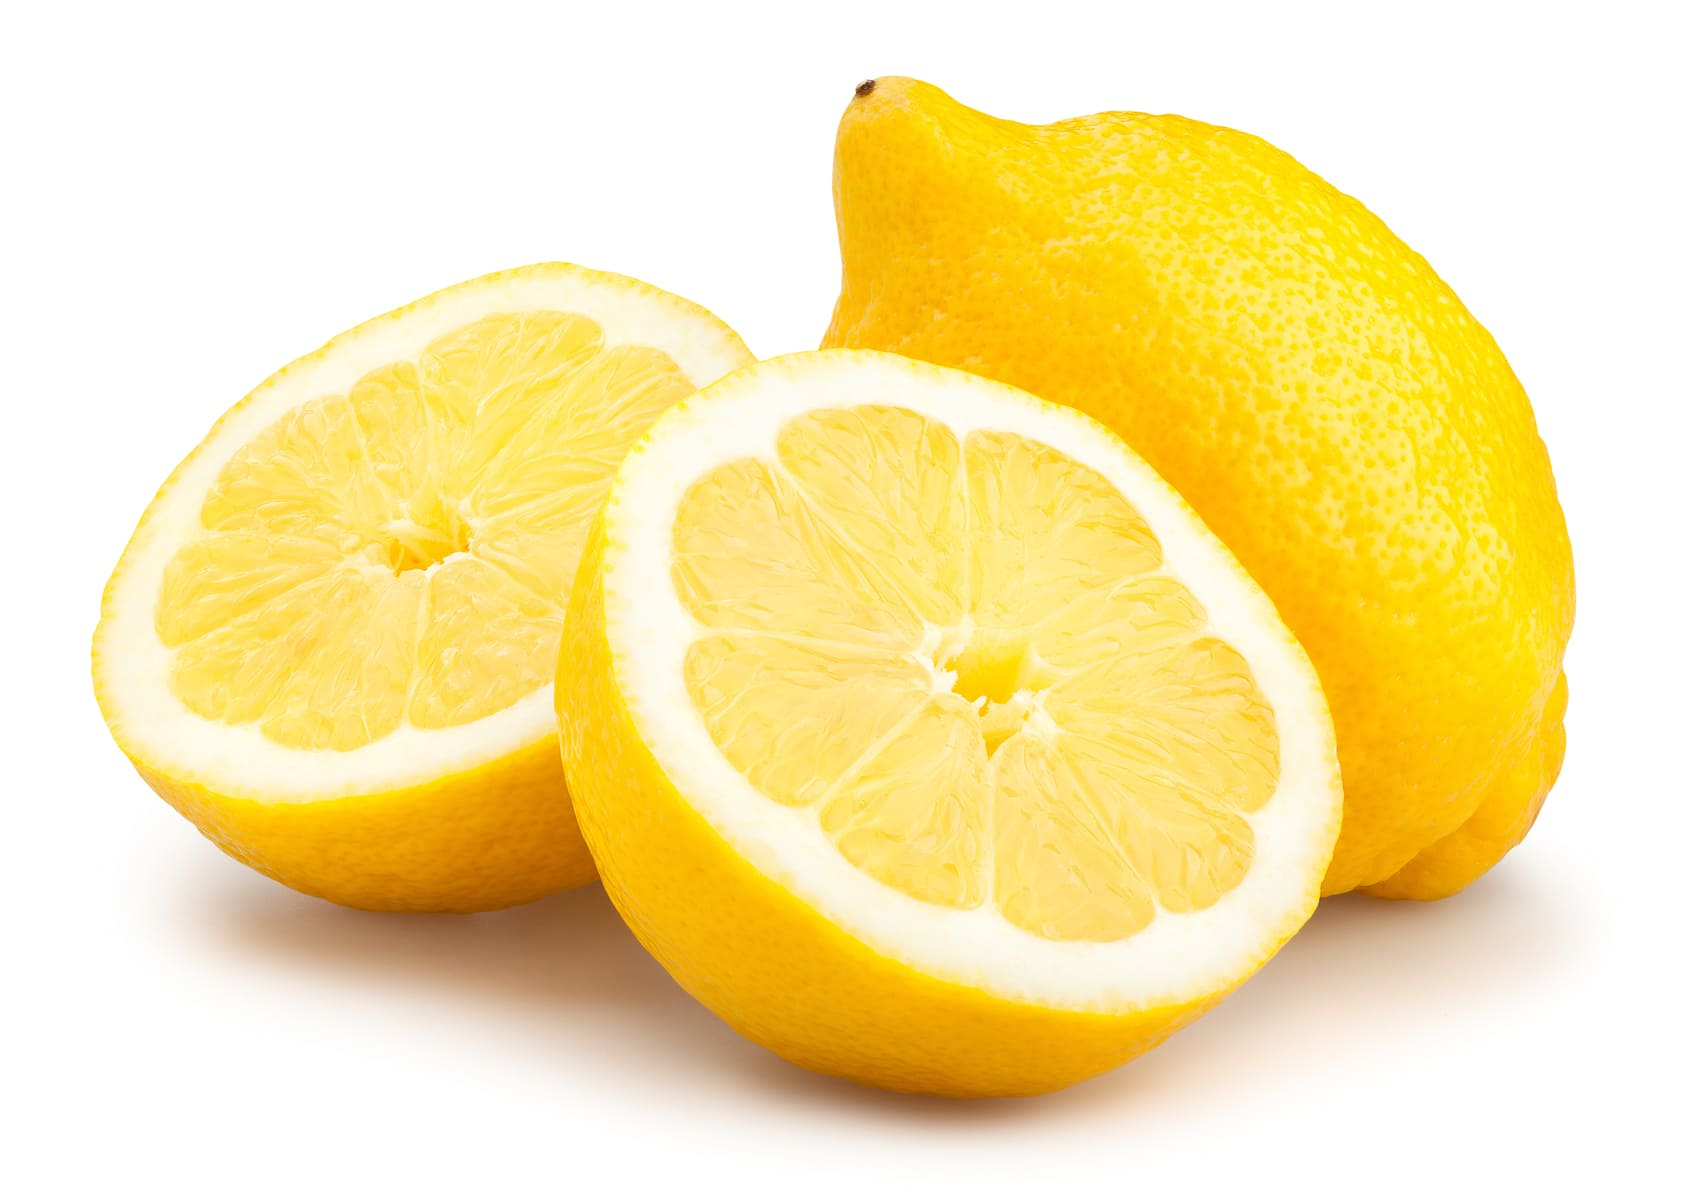 What to do with lemons - Healthy Food Guide